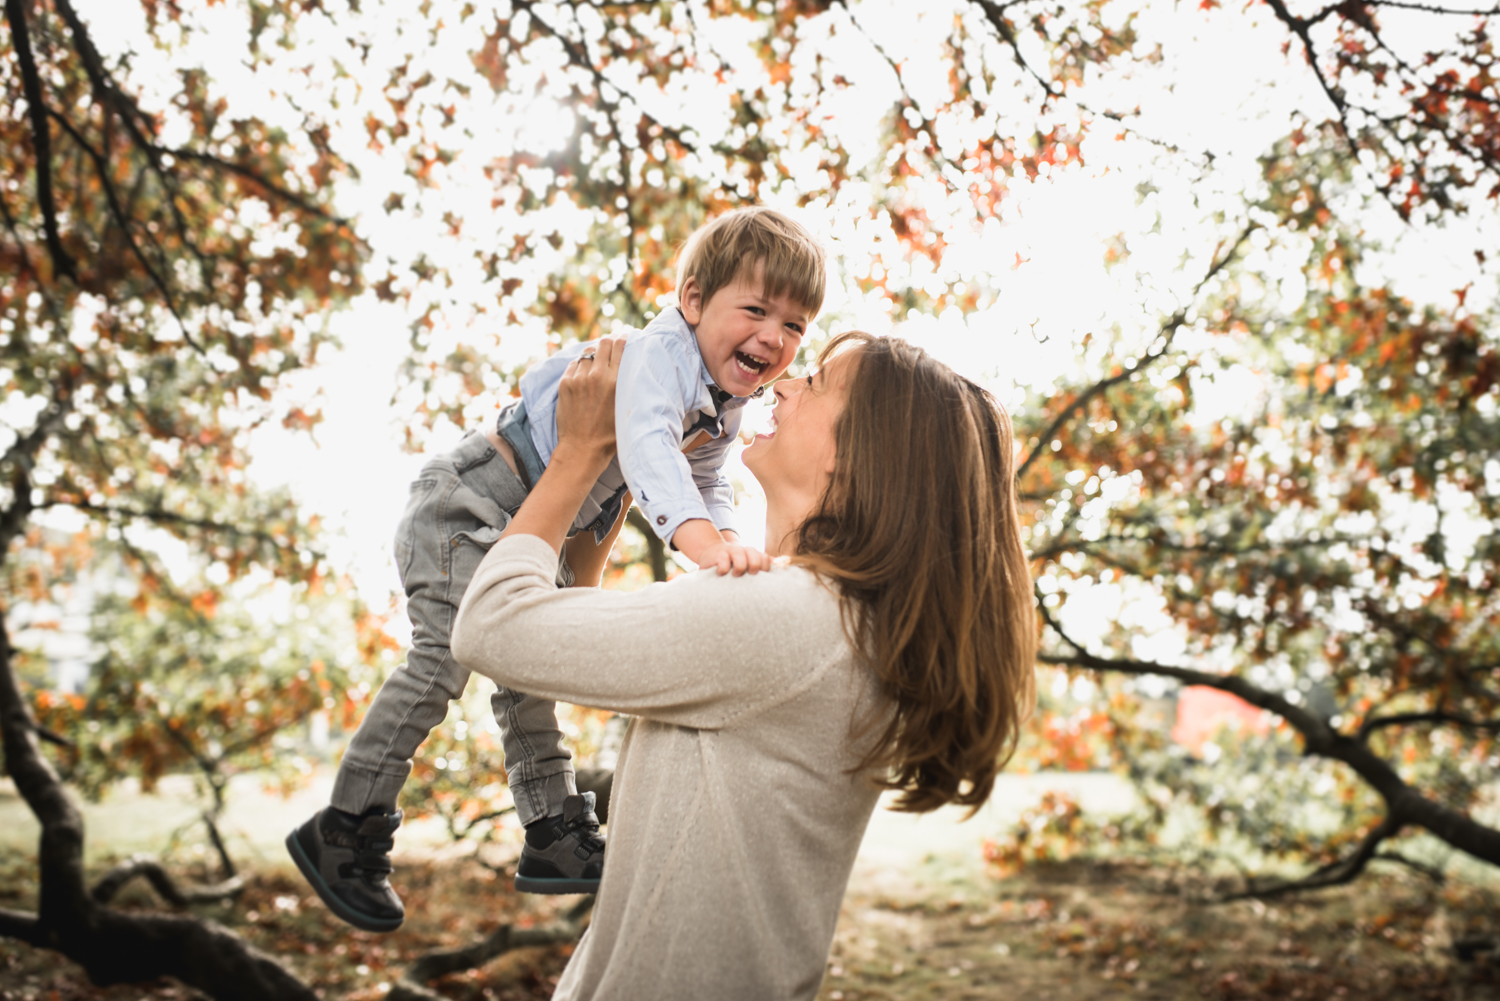 Mother lifts son in air by Hampshire Family Photographer Evie Winter